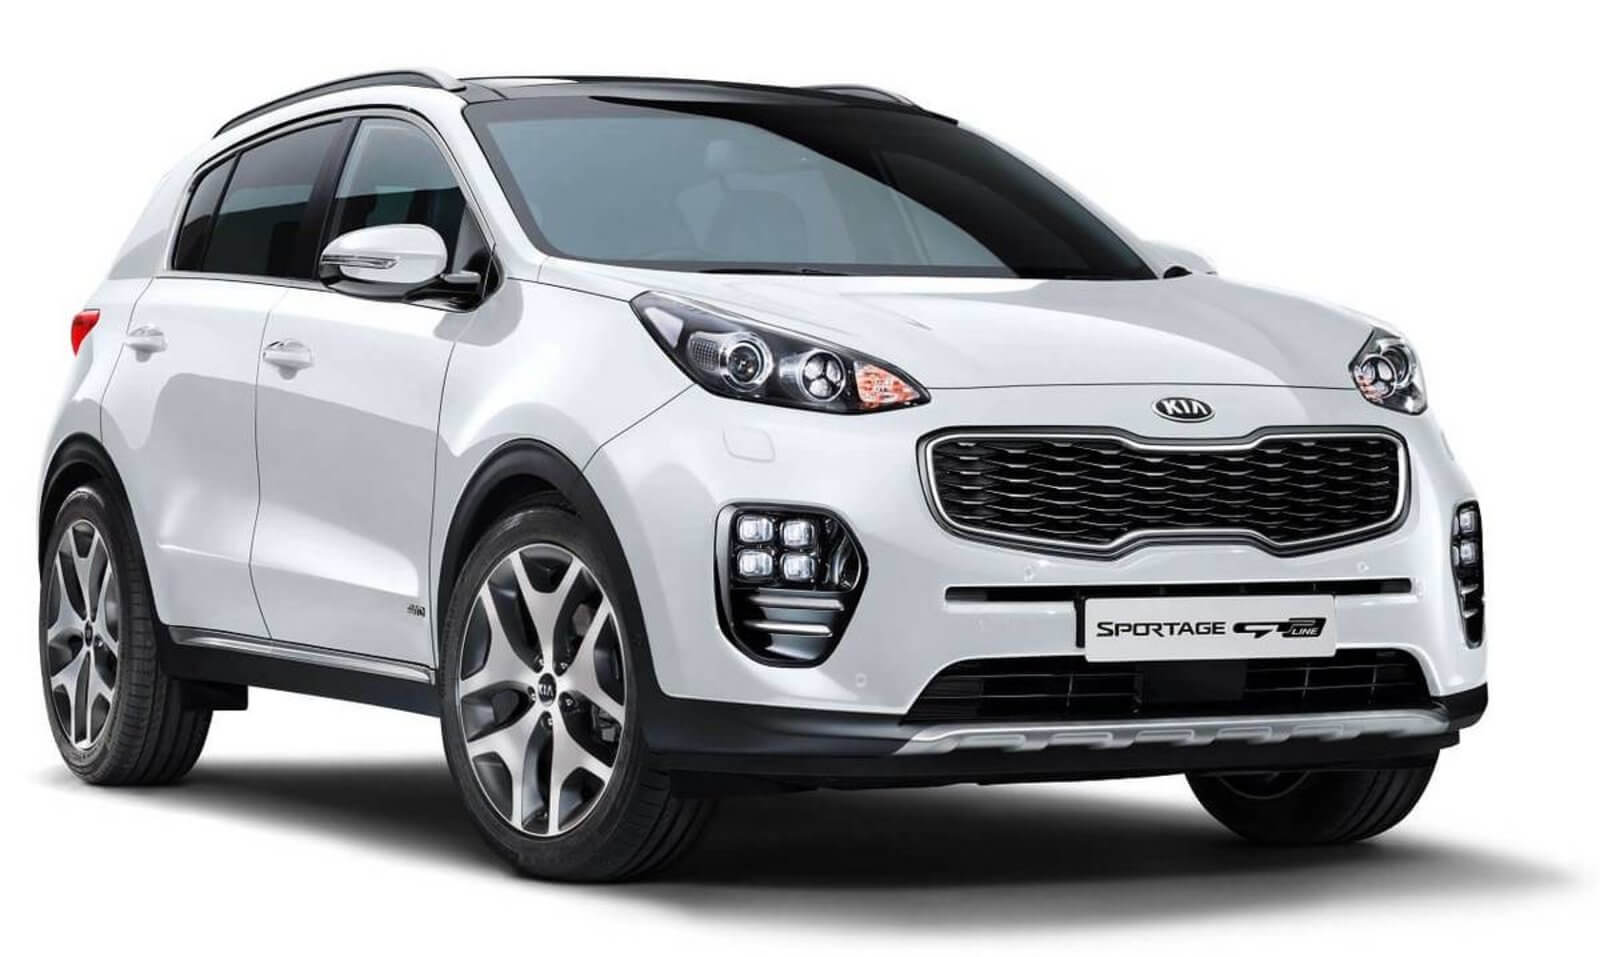 kia sportage 1 6 gdi 2wd edition 7 leasing f r 108 im. Black Bedroom Furniture Sets. Home Design Ideas